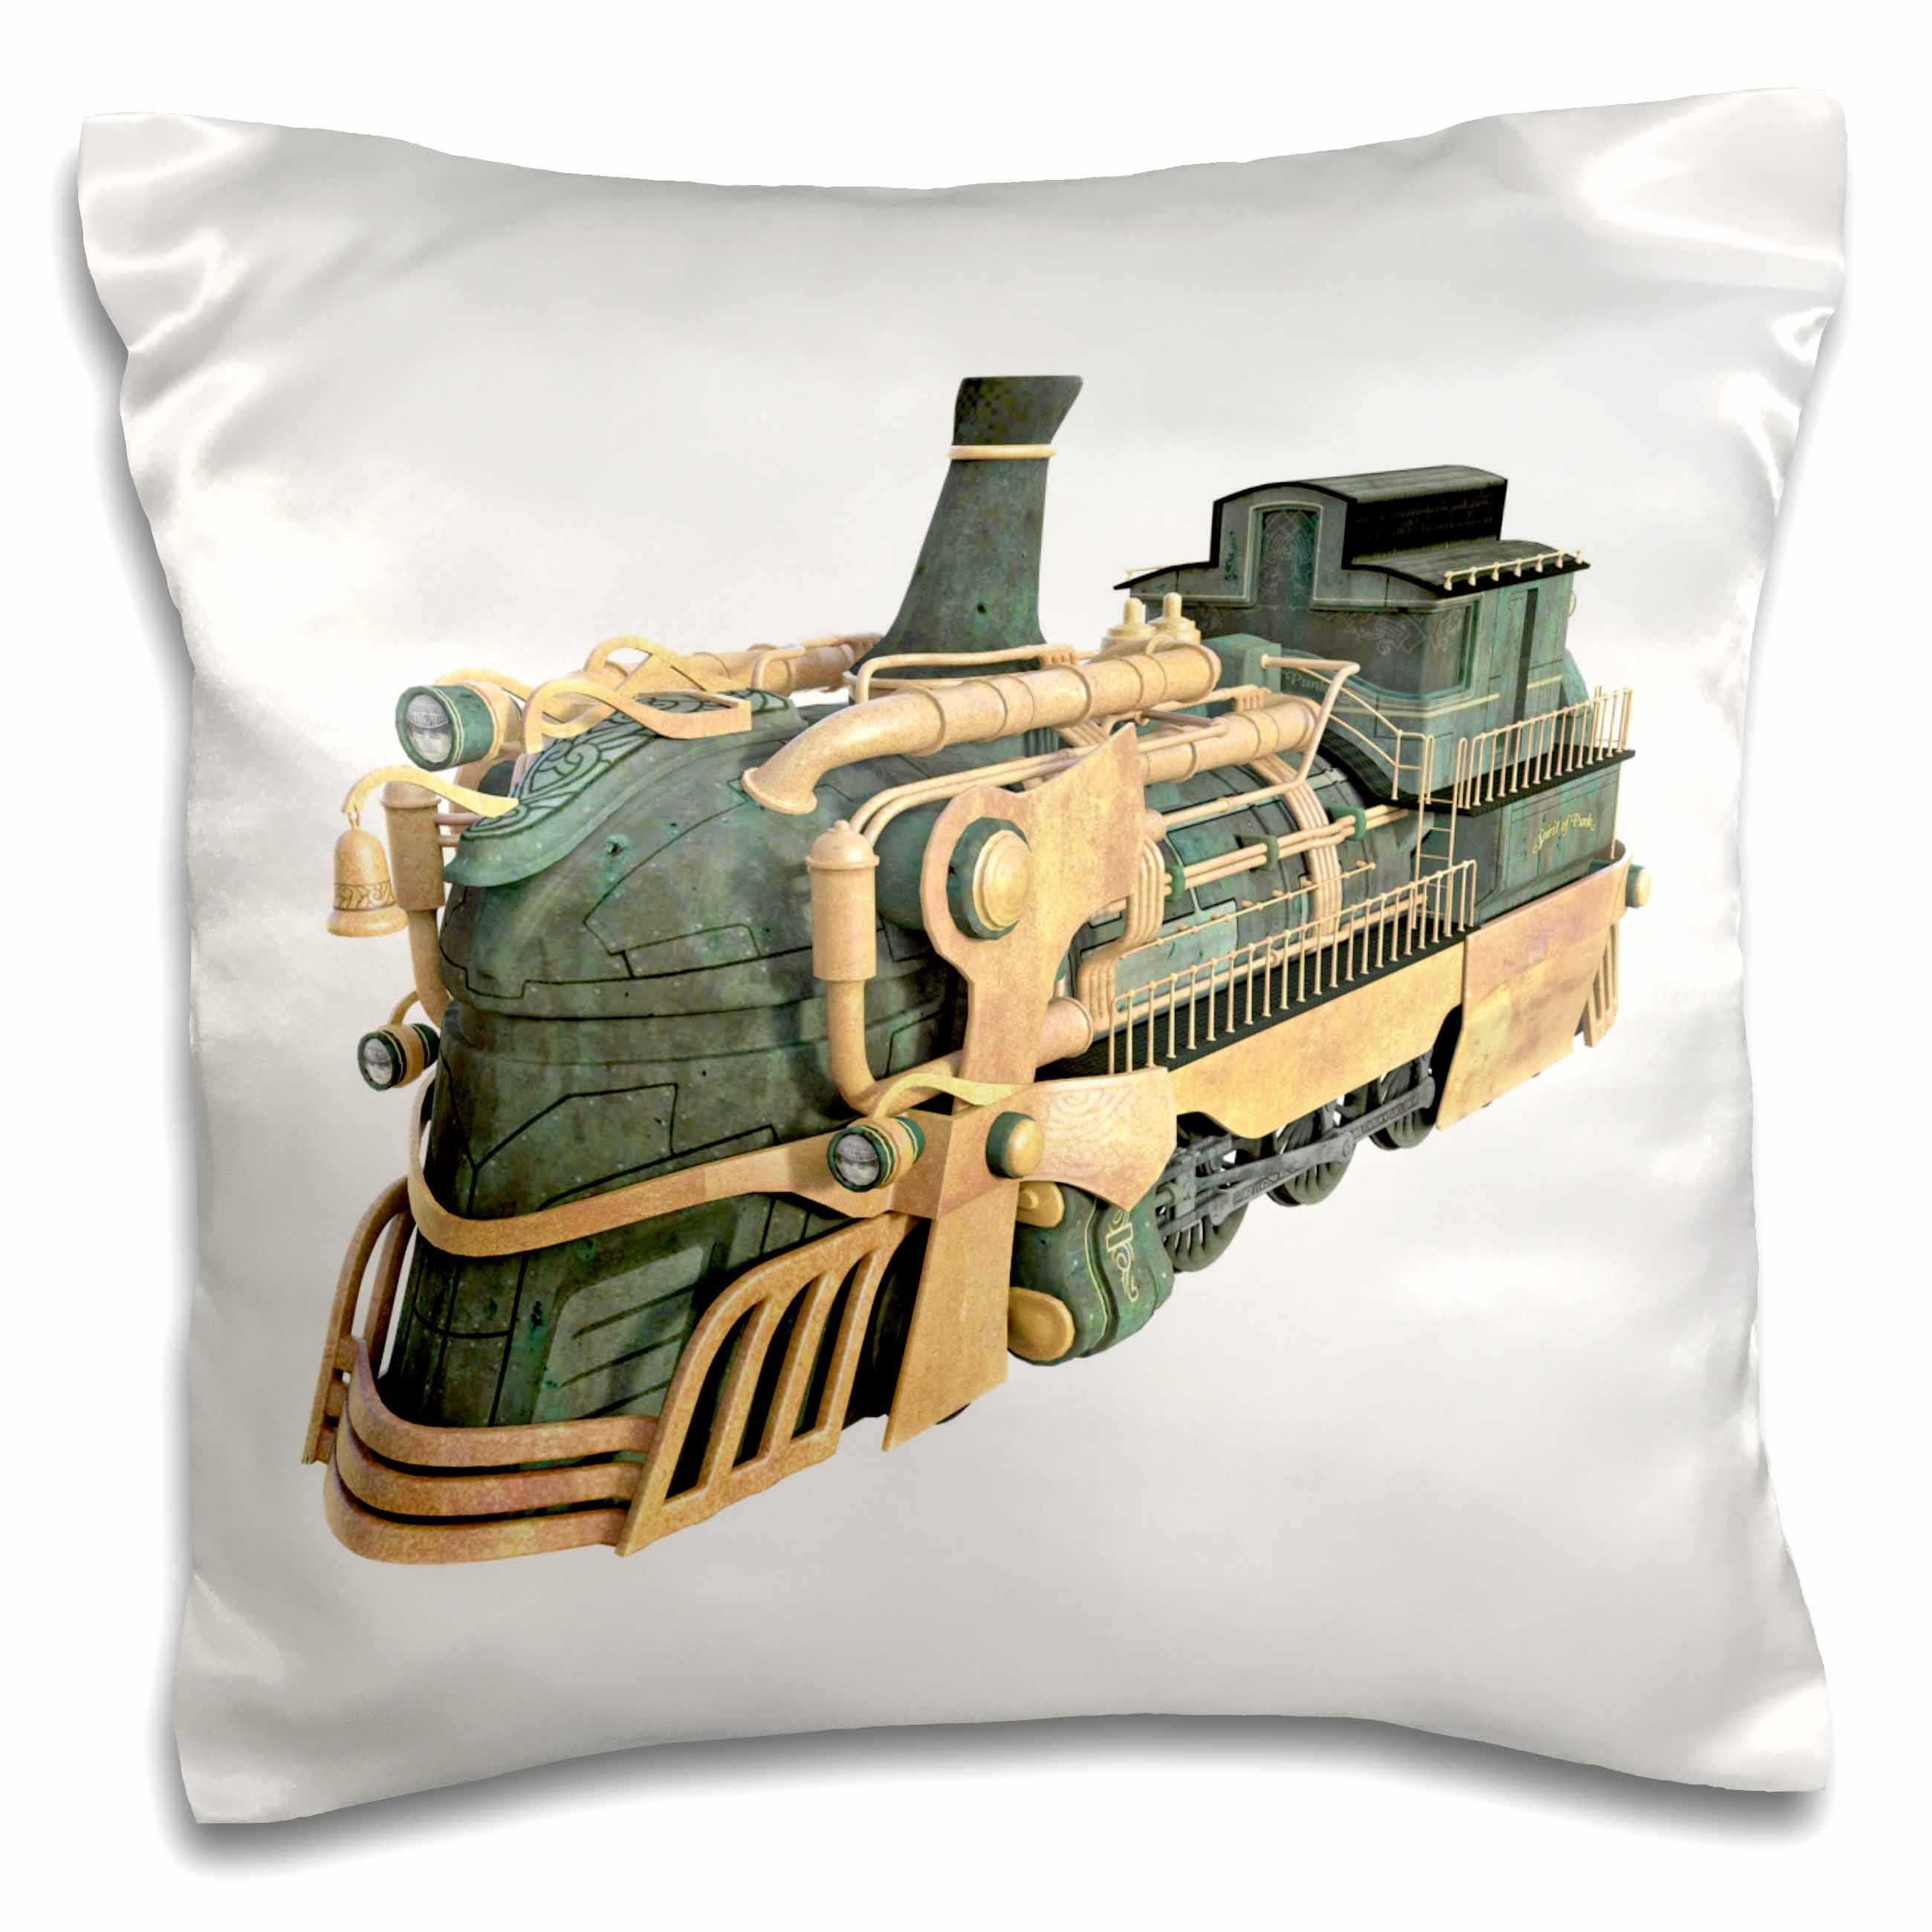 3drose a green patina and copper steampunk train engine pillow case 16 by 16 inch